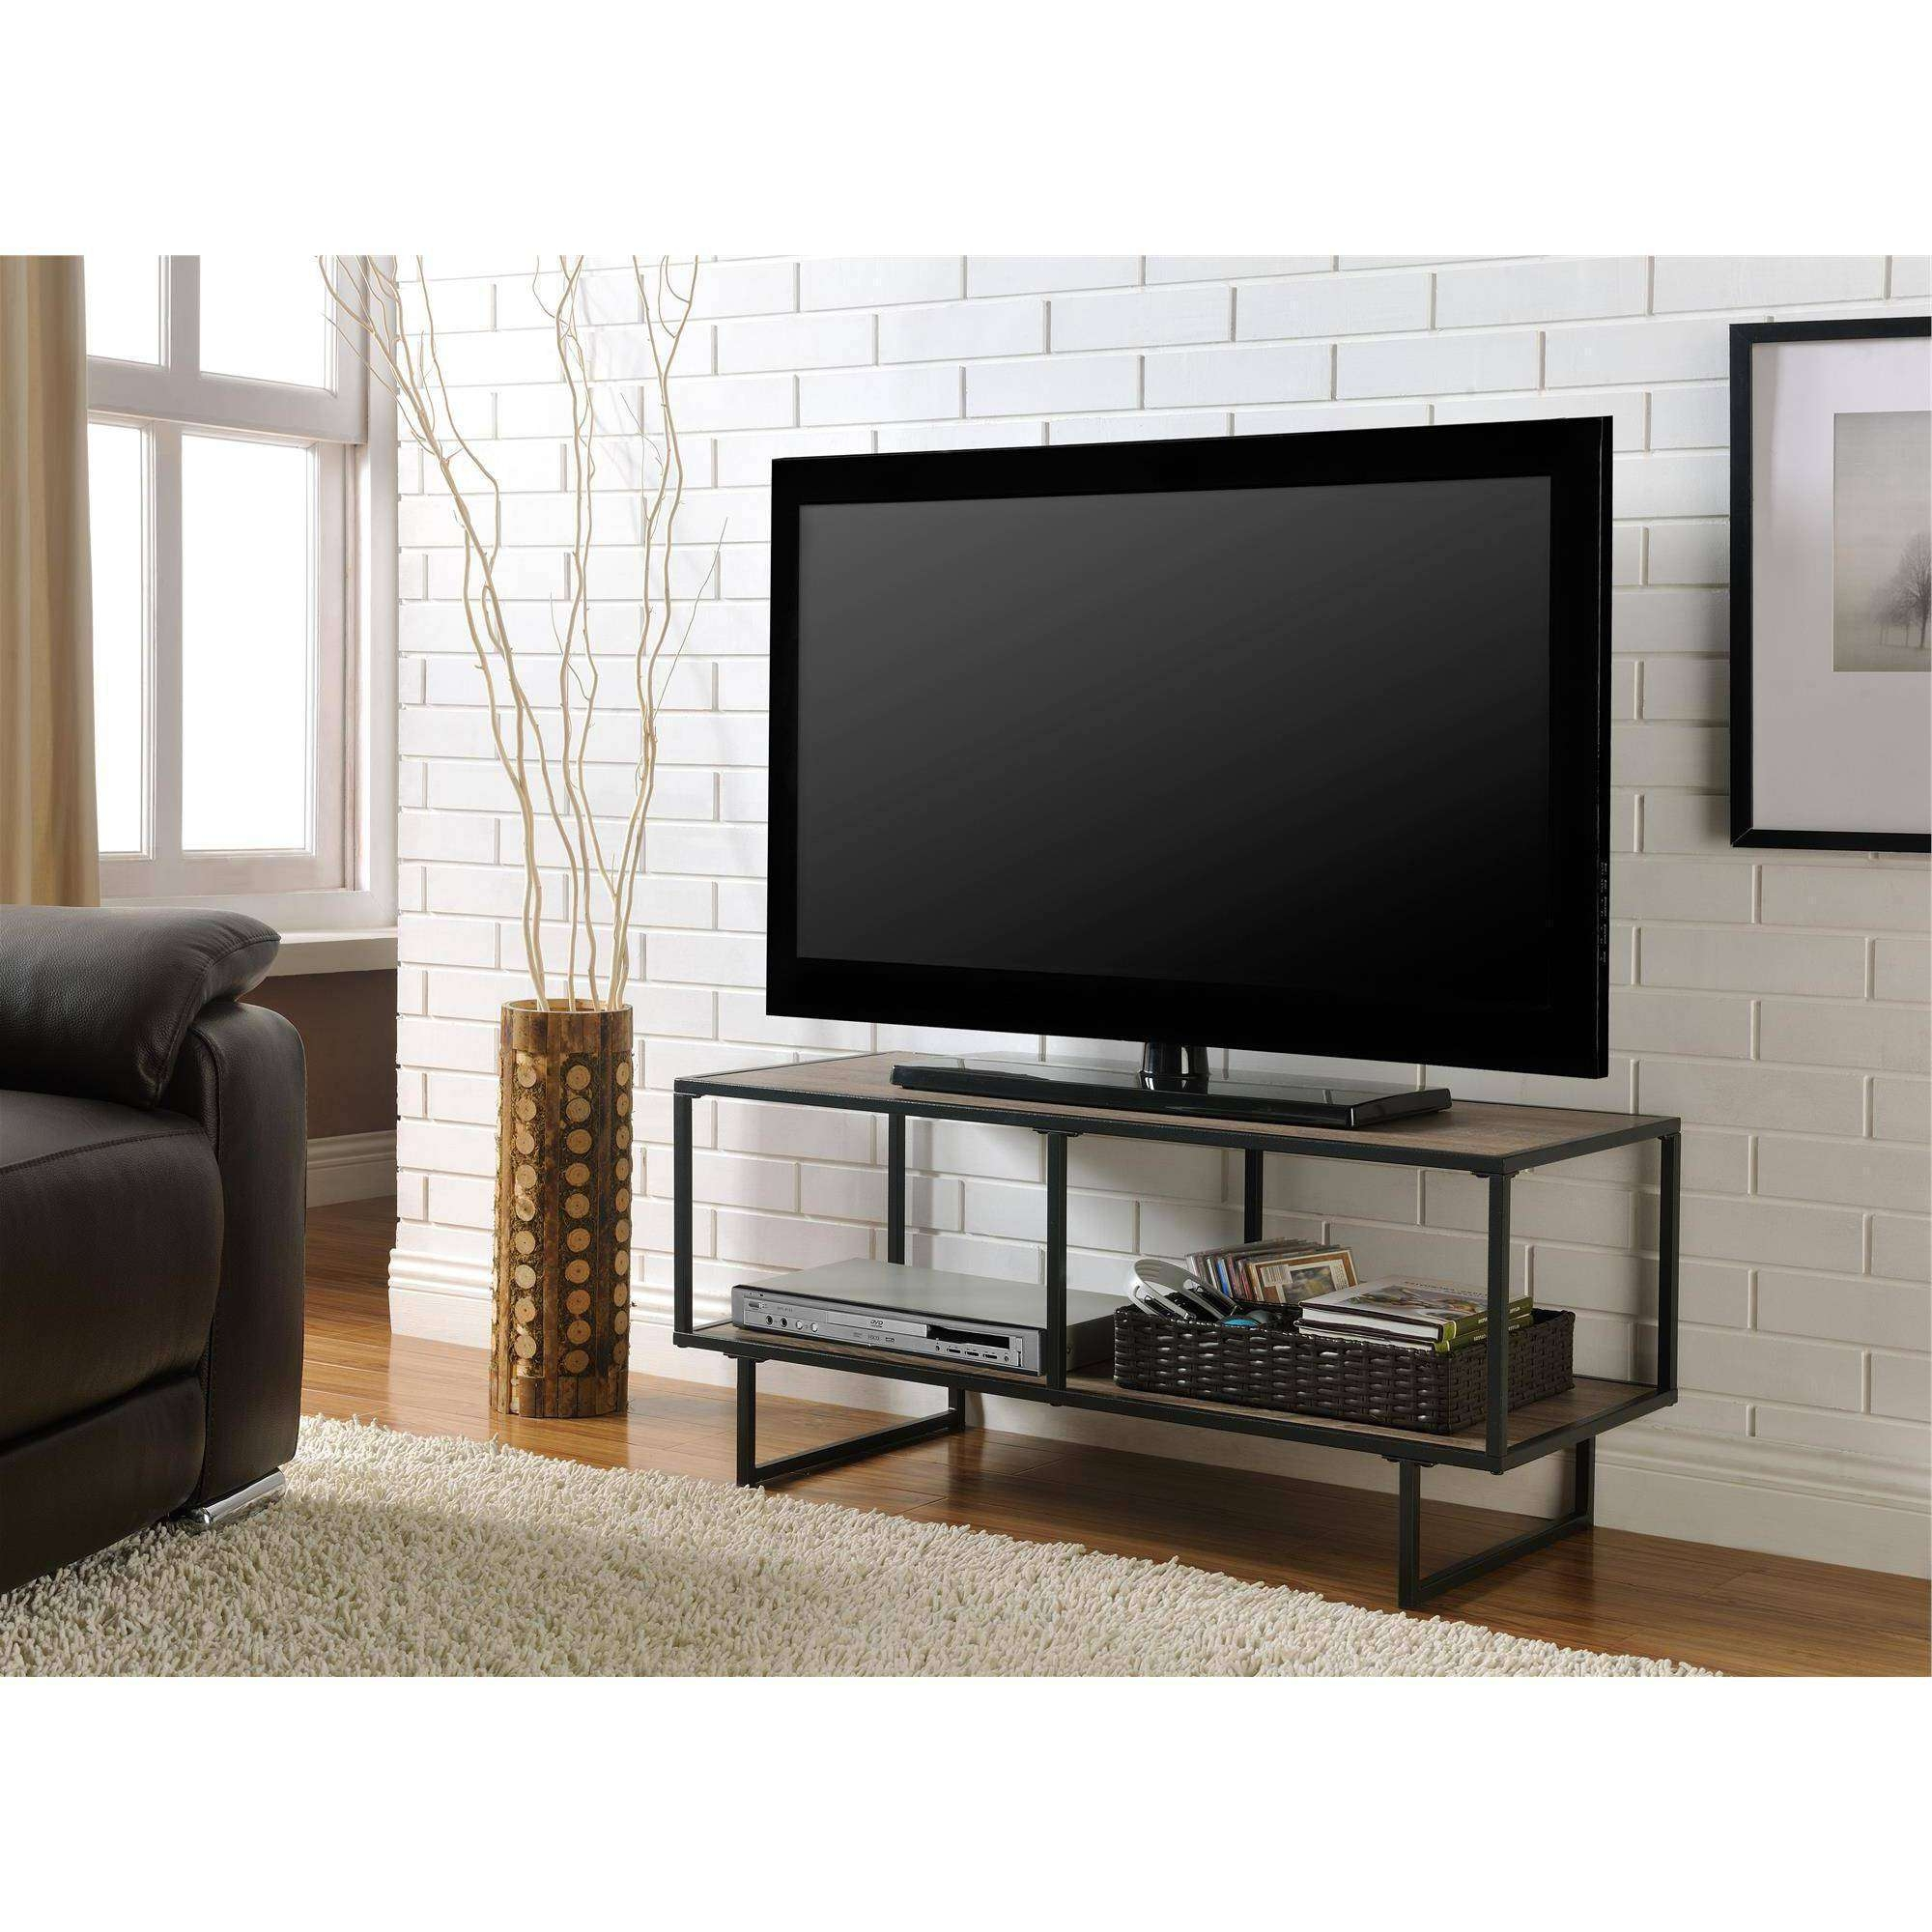 Altra Furniture Emmett 1 Shelf Tv Stand Coffee Table In Sonoma Oak Within Latest Tv Unit And Coffee Table Sets (View 14 of 20)